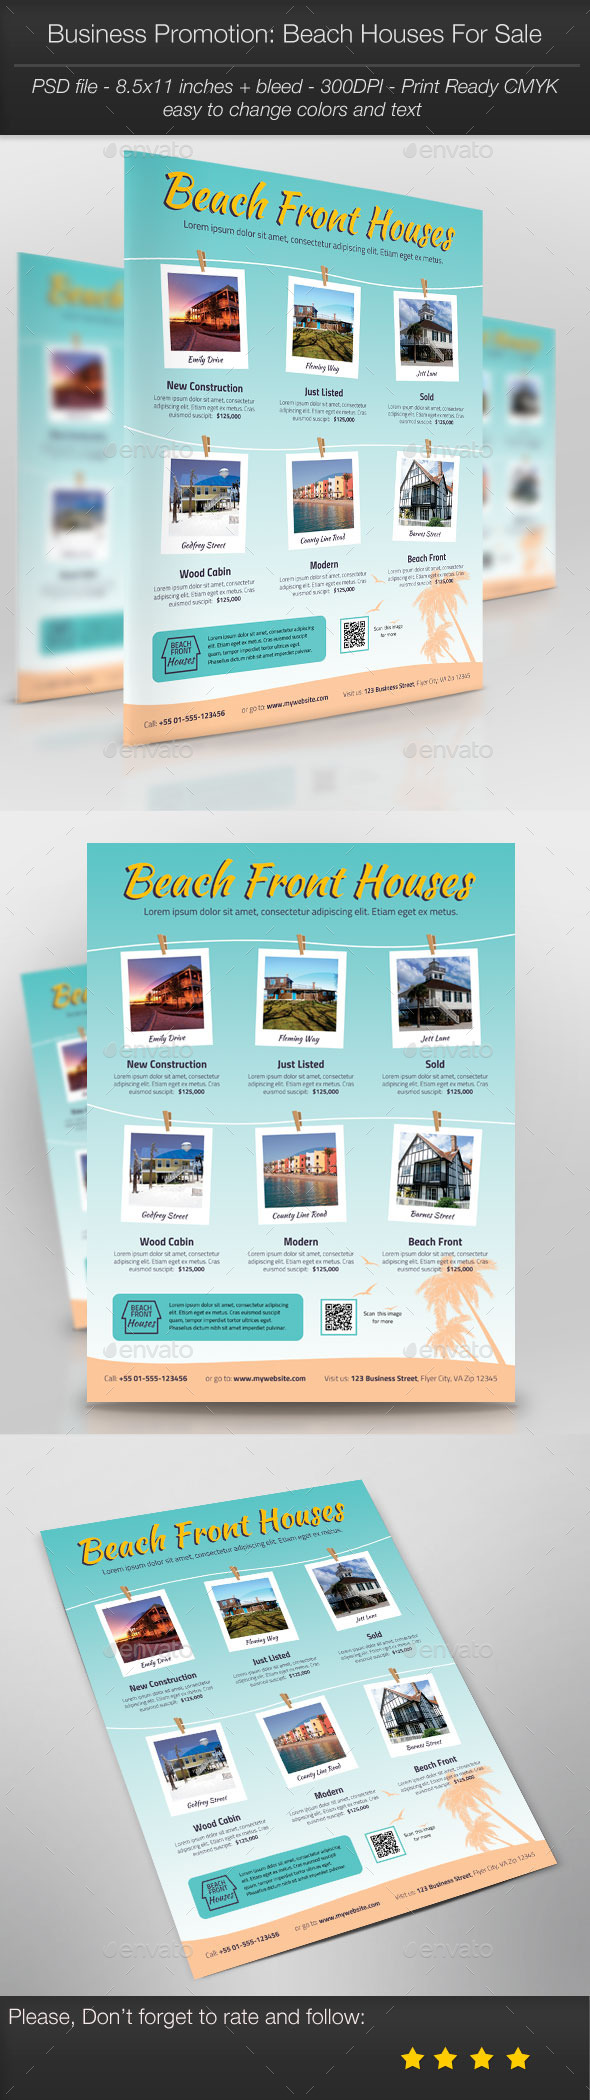 GraphicRiver Business Promotion Beach Houses For Sale 10790157